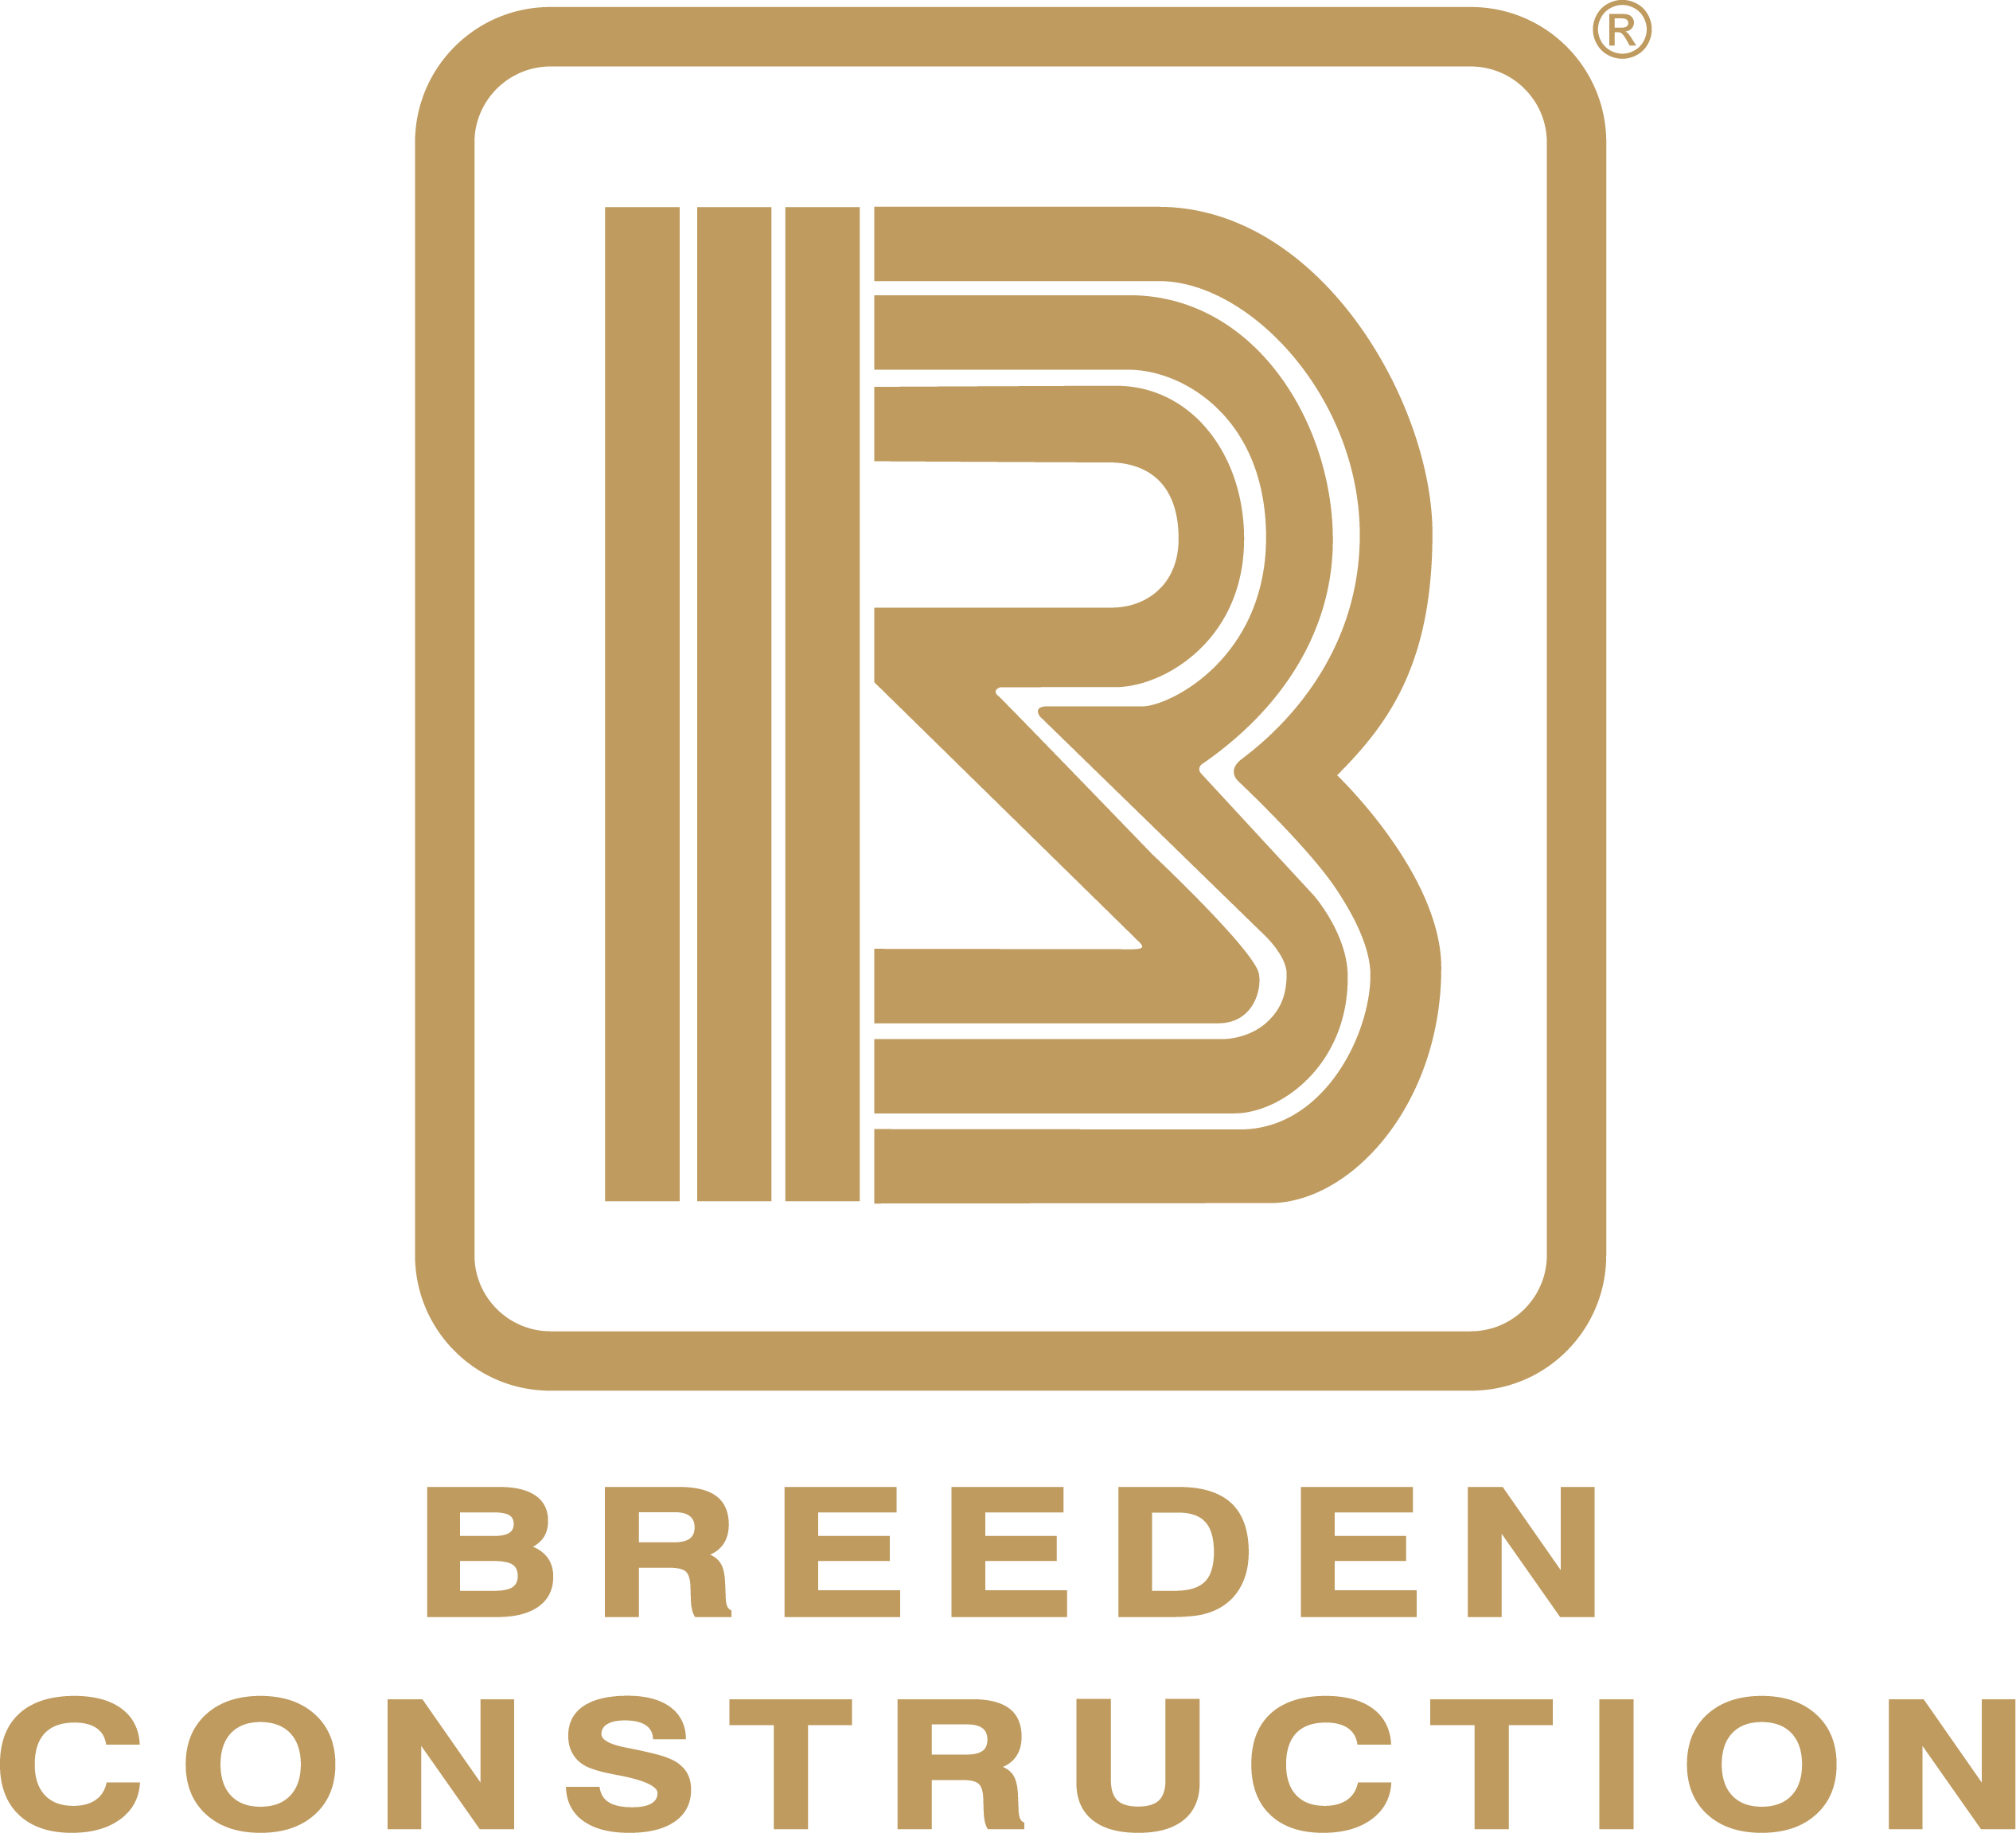 BREEDEN-CONSTRUCTION-GOLD-002